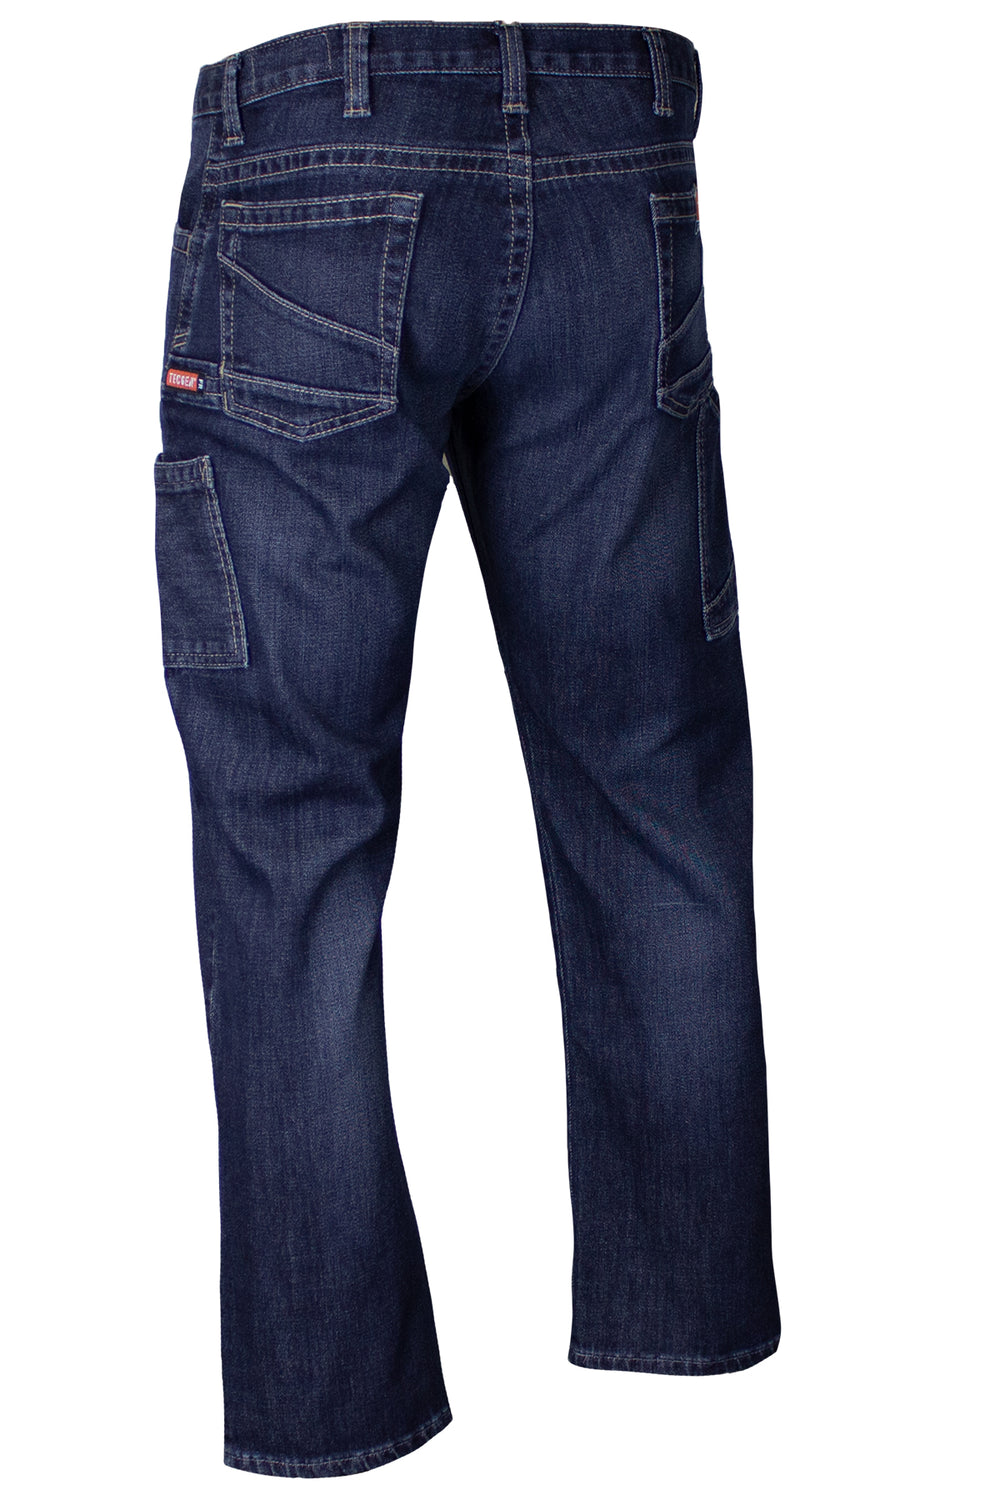 Tecgen FR Men's Tap Room Inherent Stretch Denim PNTD6JTR Back